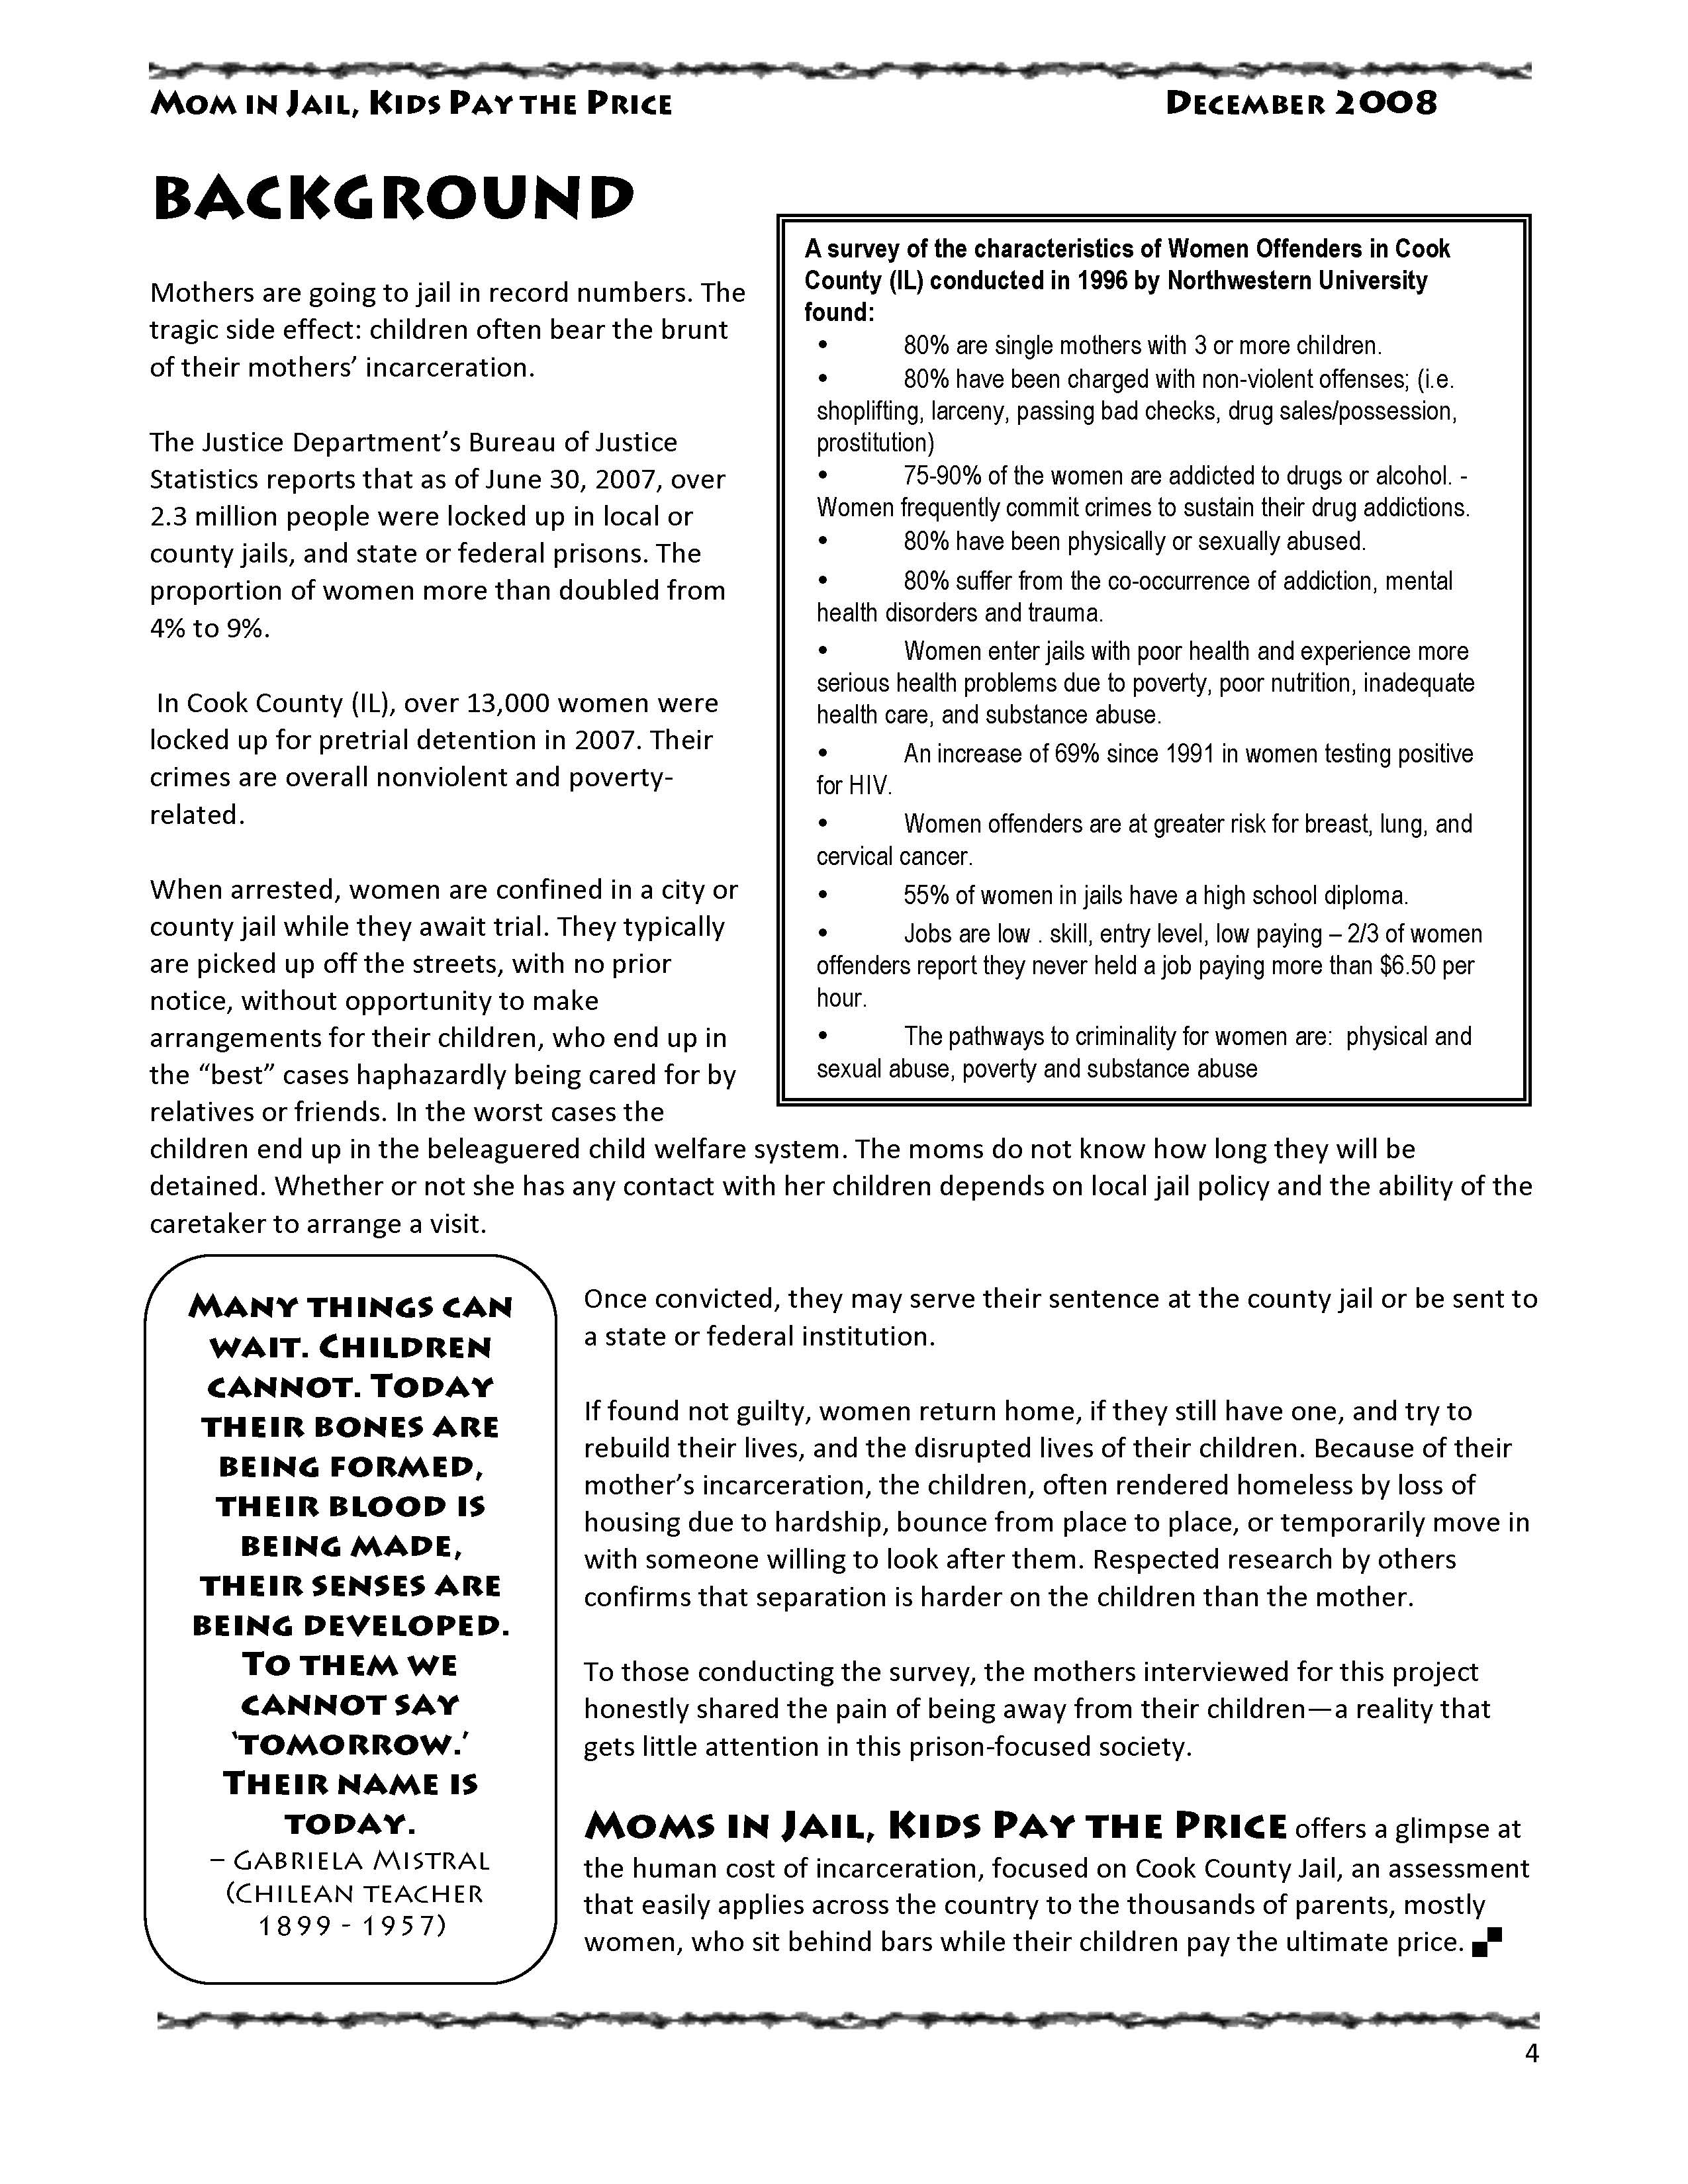 Jail Survey Report FINAL 17small Page 4